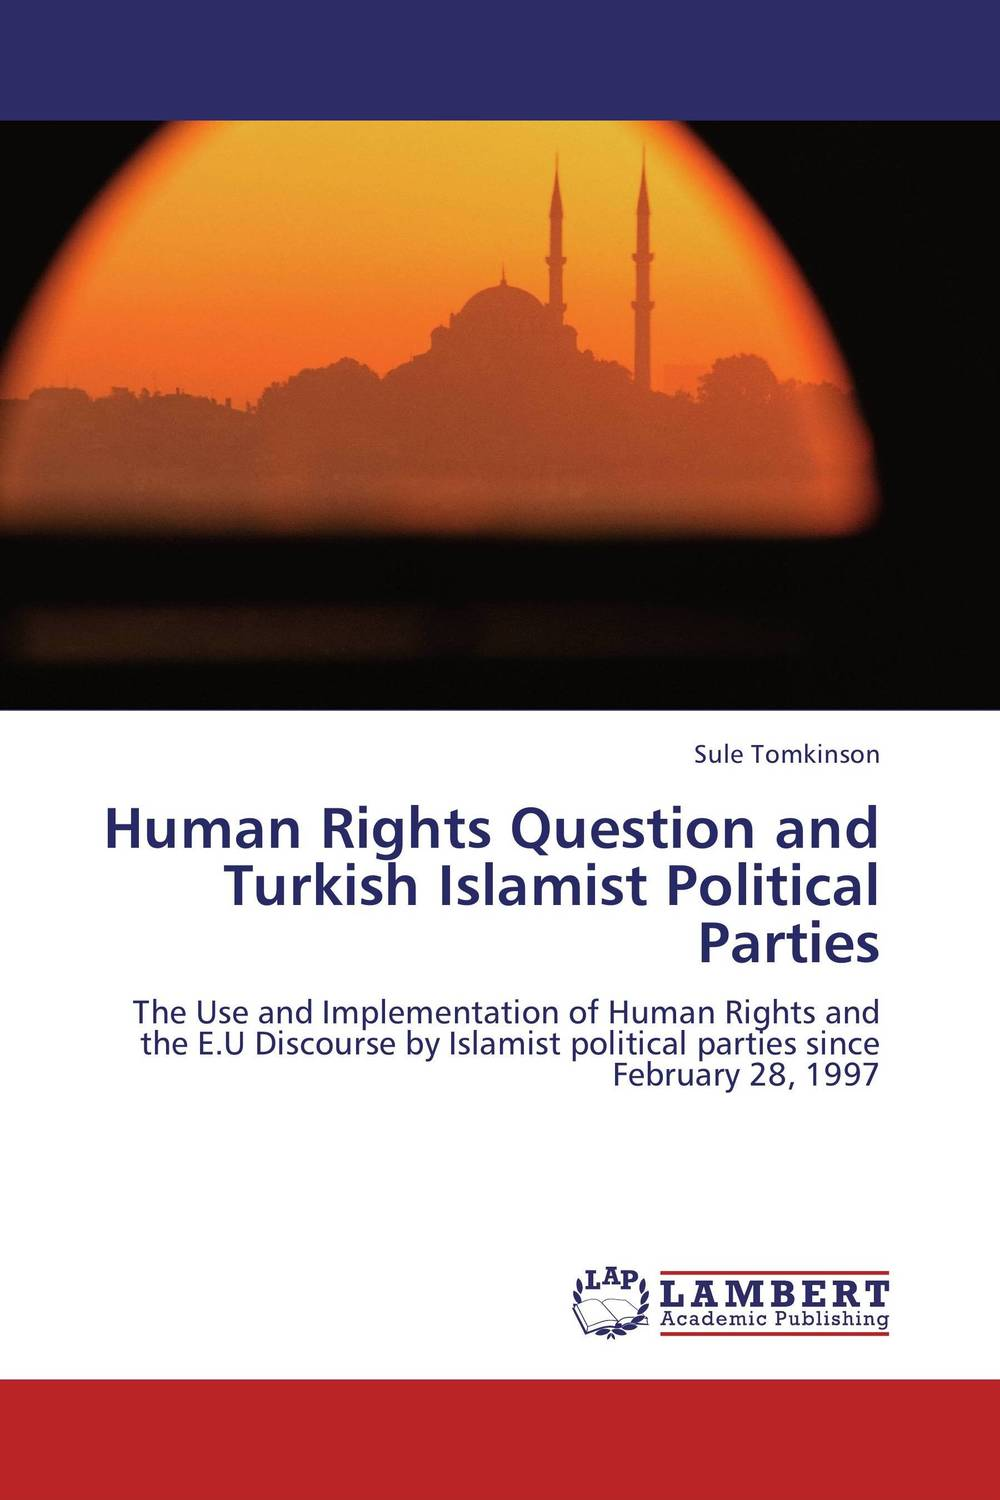 Human Rights Question and Turkish Islamist Political Parties identity of political parties in albania